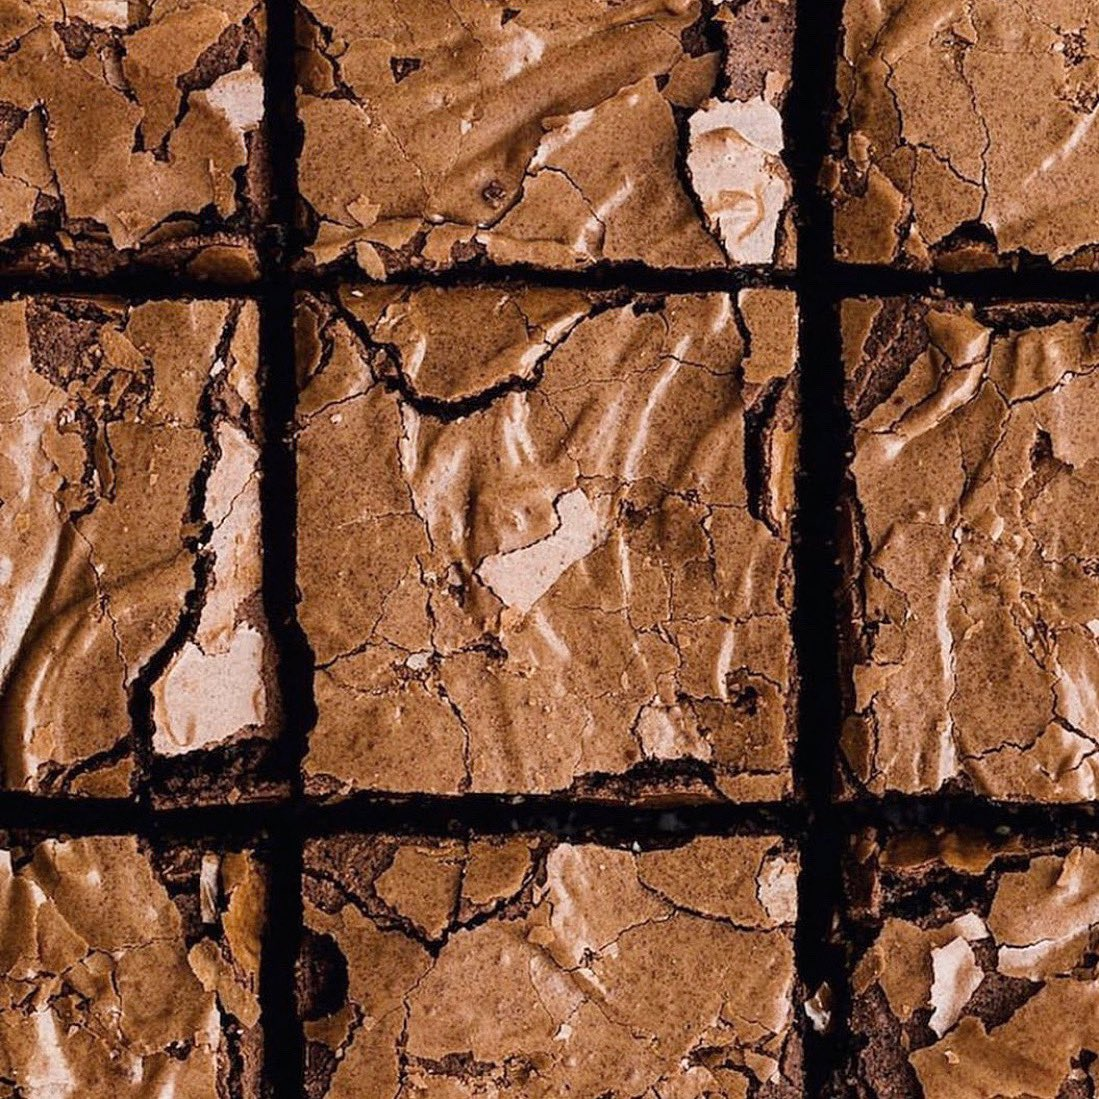 When you are downie eat a brownie, they say  ⠀⠀⠀ #brownies #socialdistancing #treatyourself #healthylifestyle #salata #lovewhatyoueat #salad #beirut #coffee #stayhome #staysafe #cleaneating #lebanon #health #wellness #saladlover #lunch #eatyourgreens #organic #sweettoothpic.twitter.com/JyPFYL6MAY – at SALATA